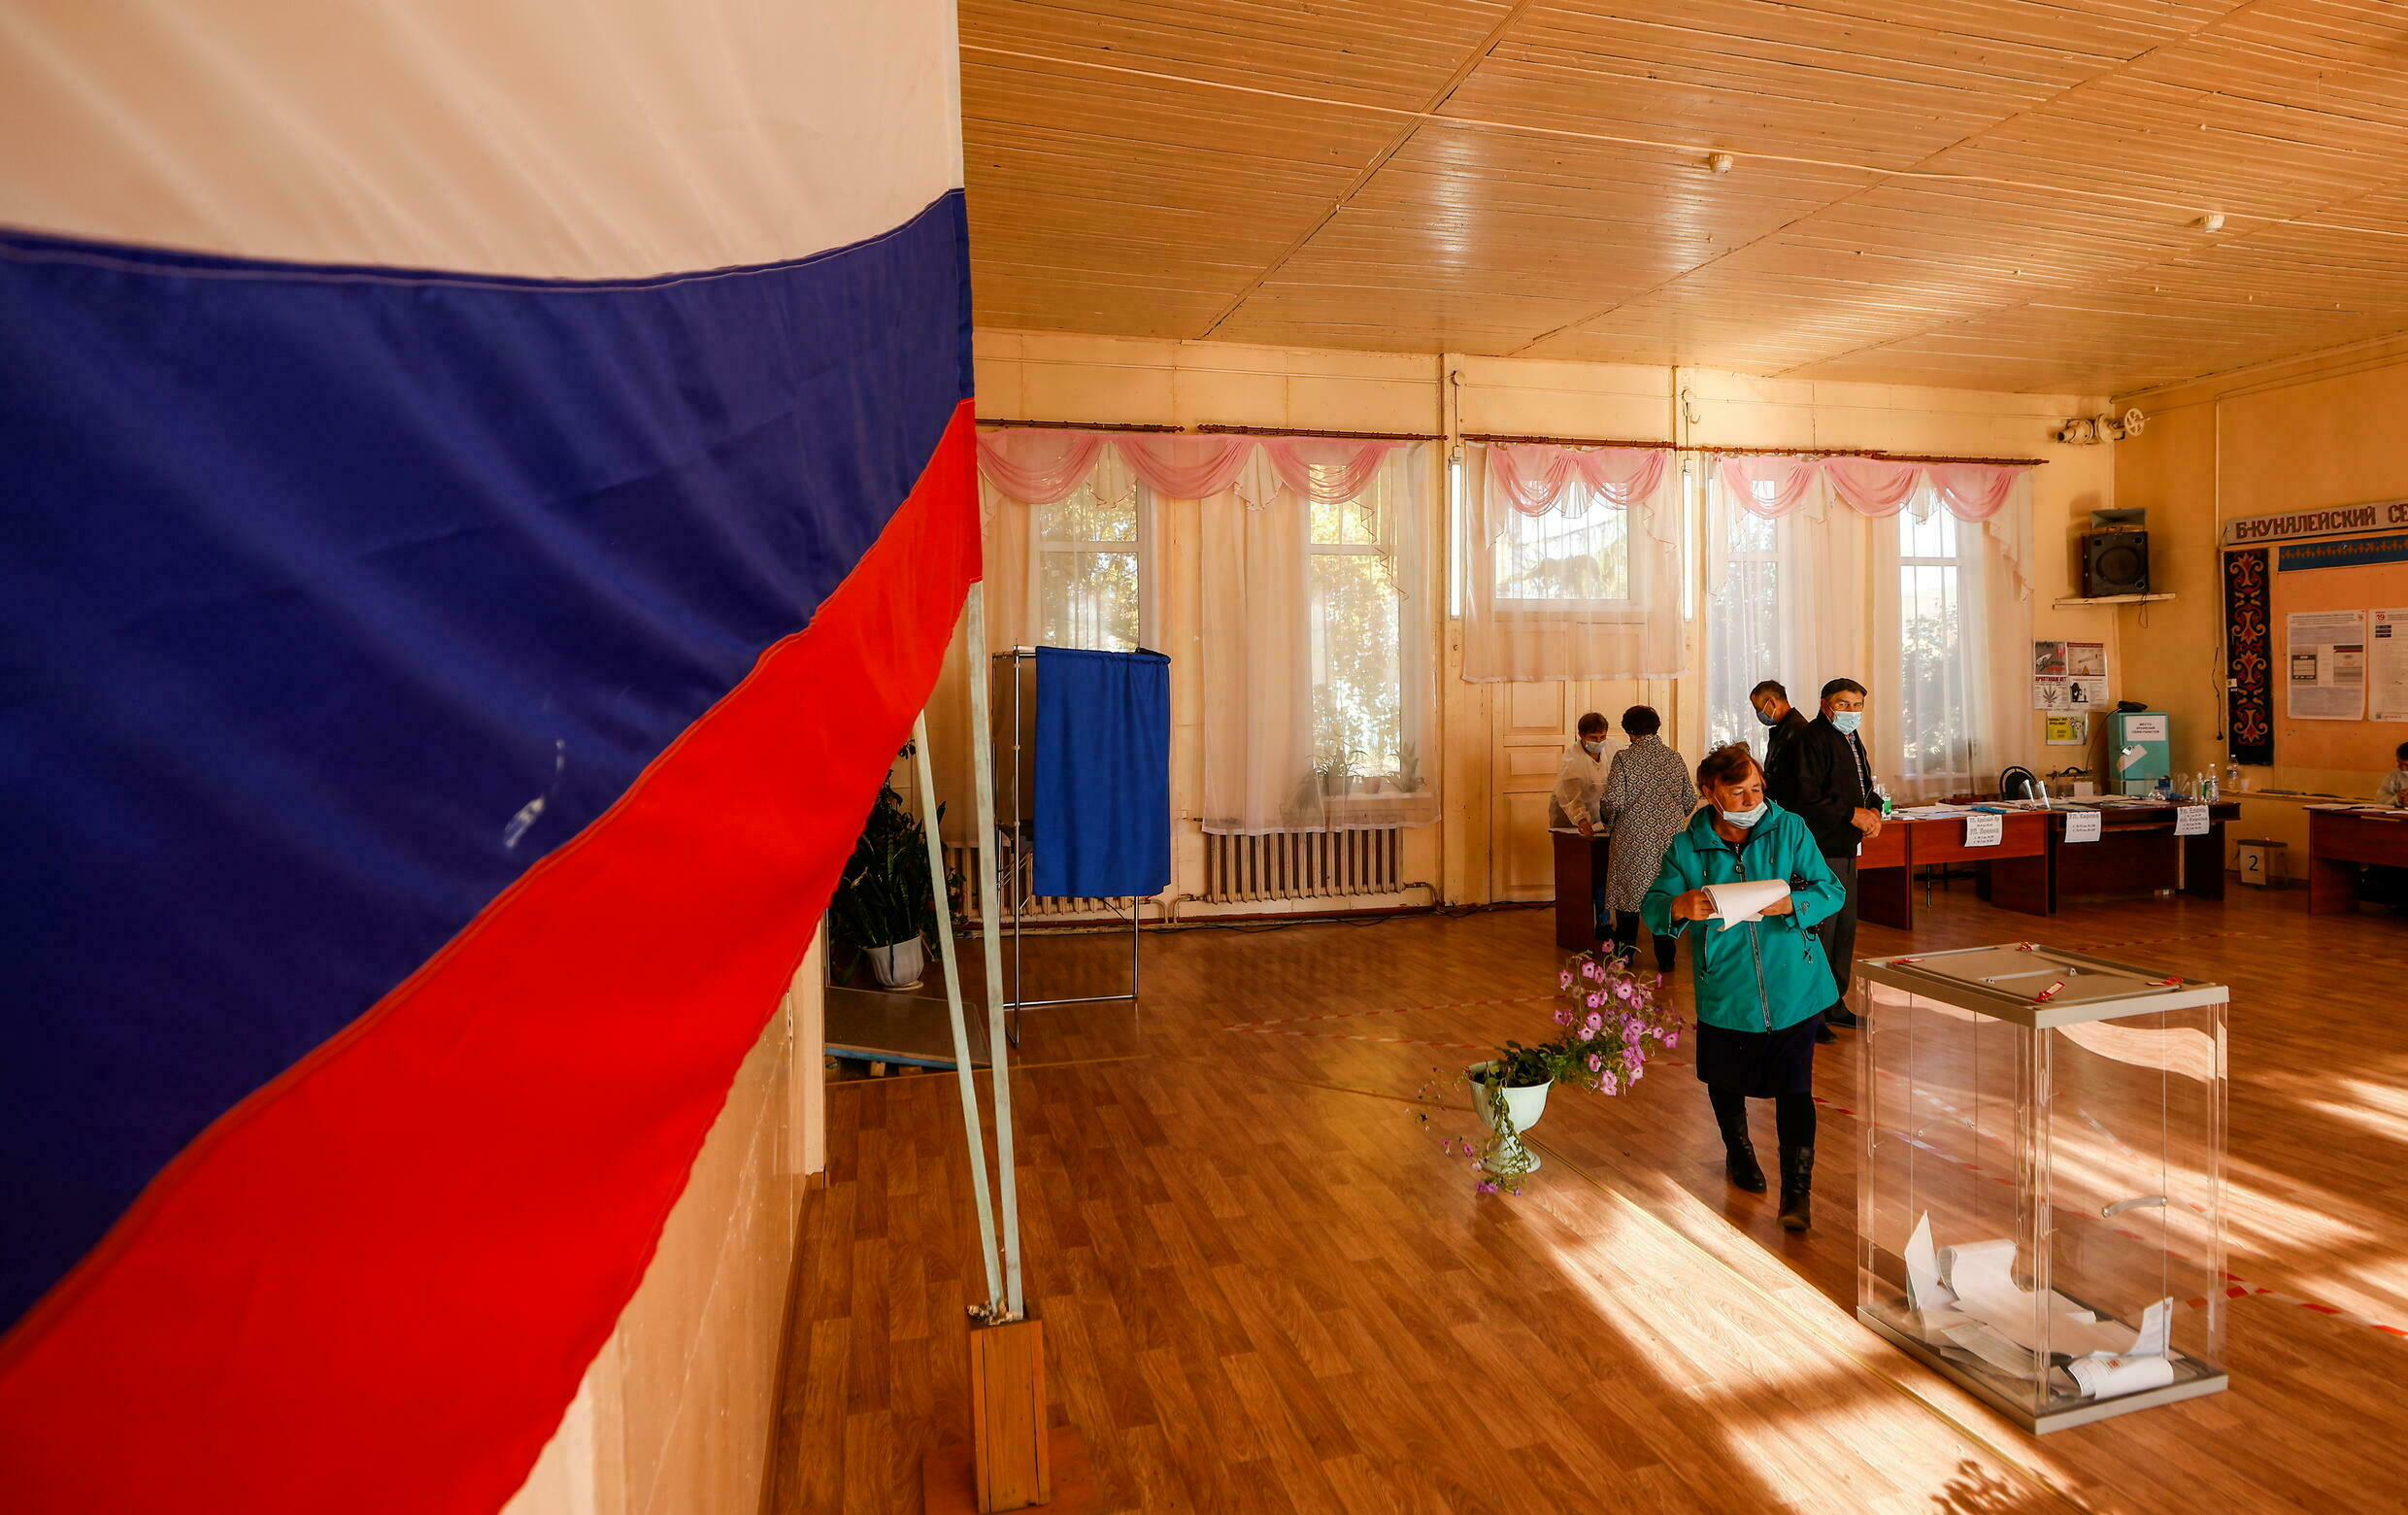 2021-09-19T071259Z_995629821_RC2PSP9IU0LD_RTRMADP_3_RUSSIA-ELECTION